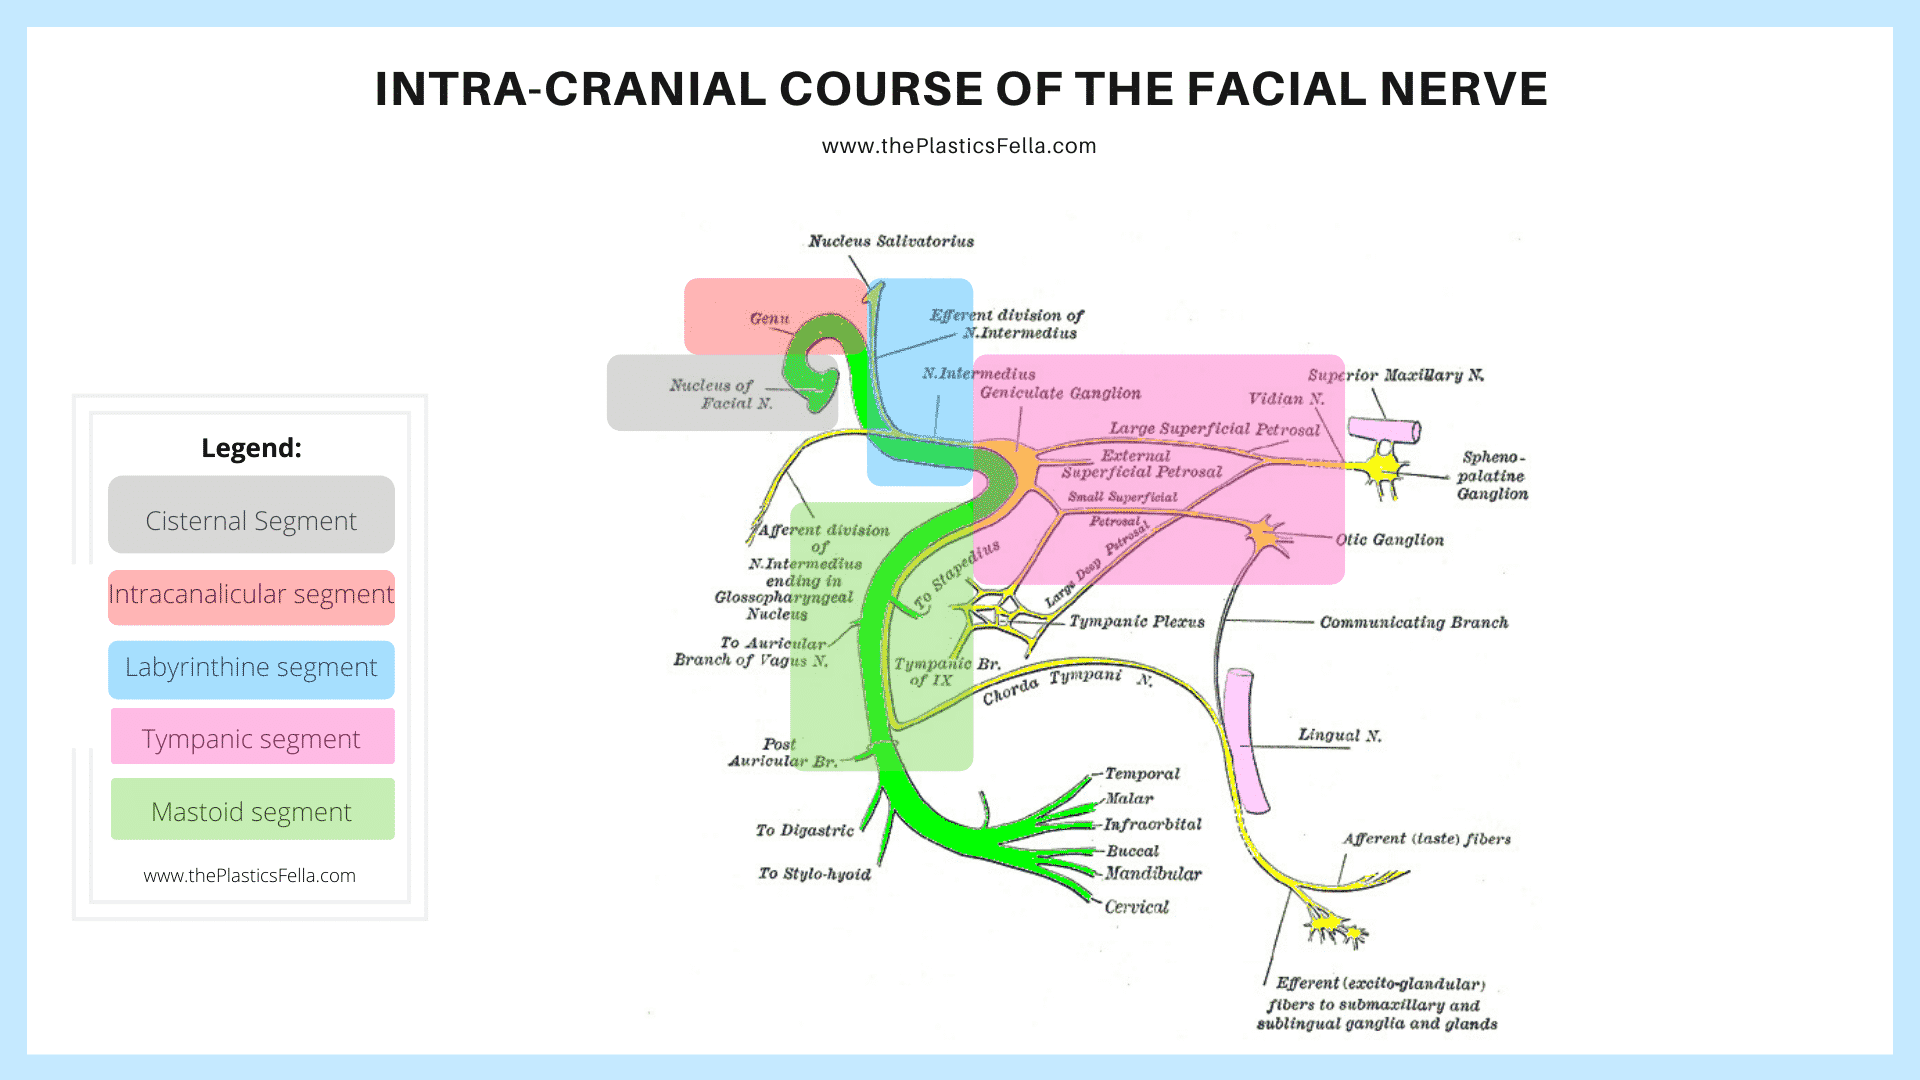 Intracranial Course of the Facial Nerve, its segments and branches.